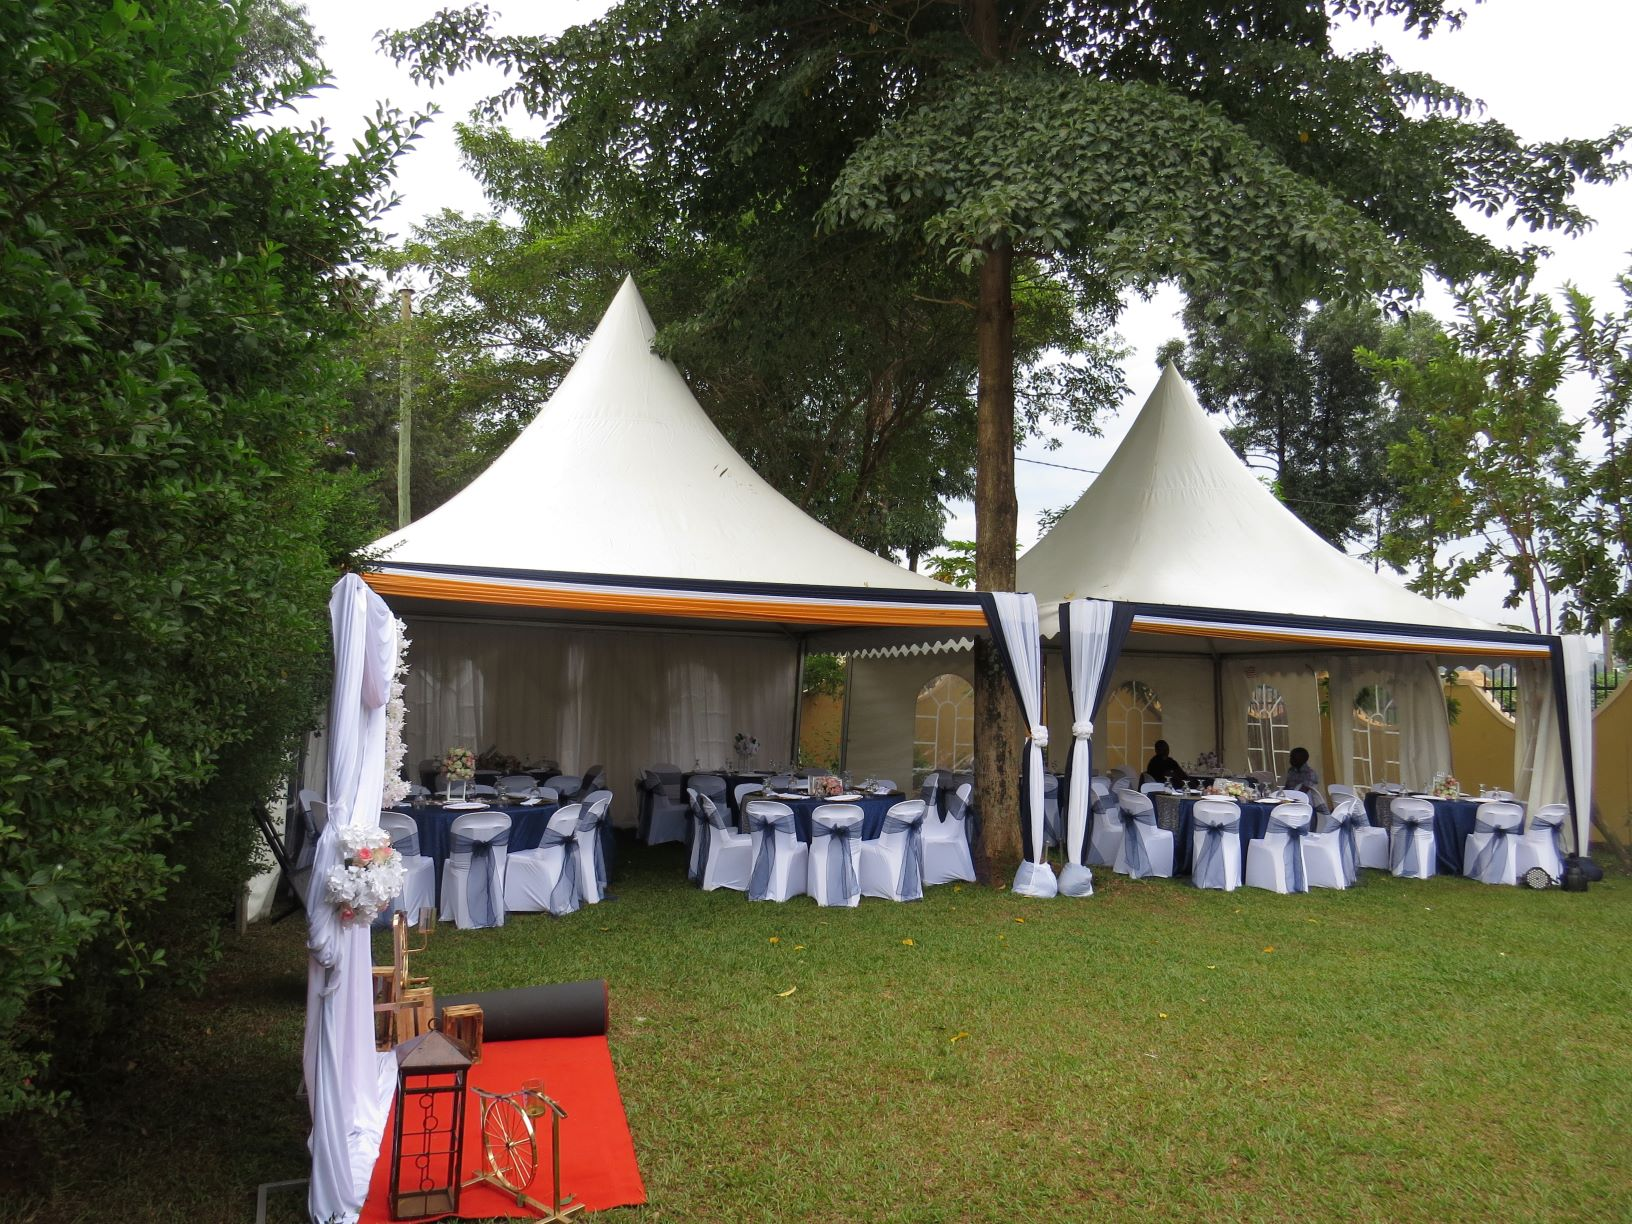 Our Pagola tents are a good choice for small size functions and serving food at larger functions